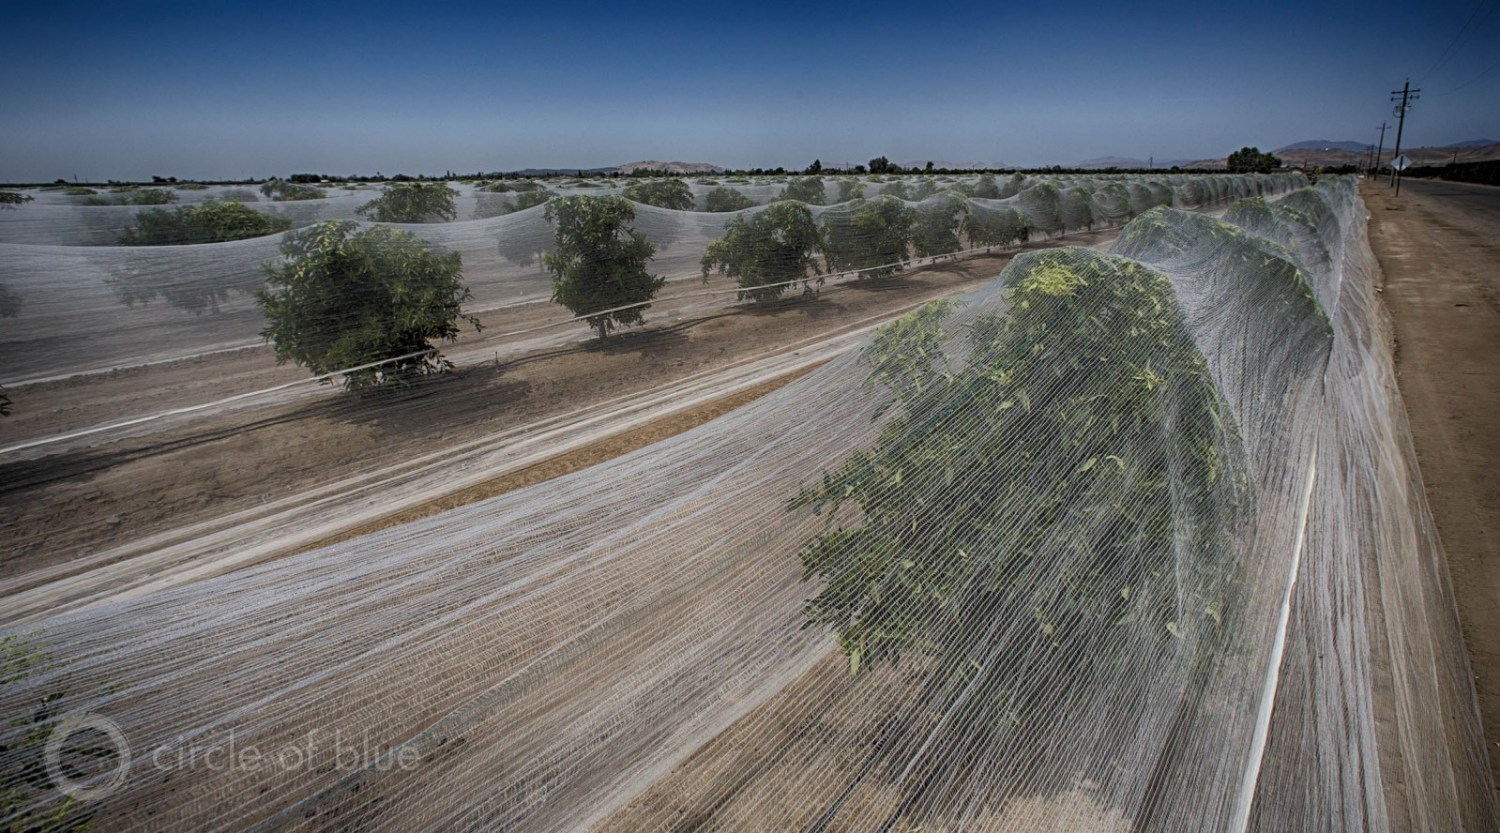 Production agriculture, based on single crops and huge water consumption, sustained big financial losses globally from droughts. Here an orange grove in California. Photo © J. Carl Ganter / Circle of Blue